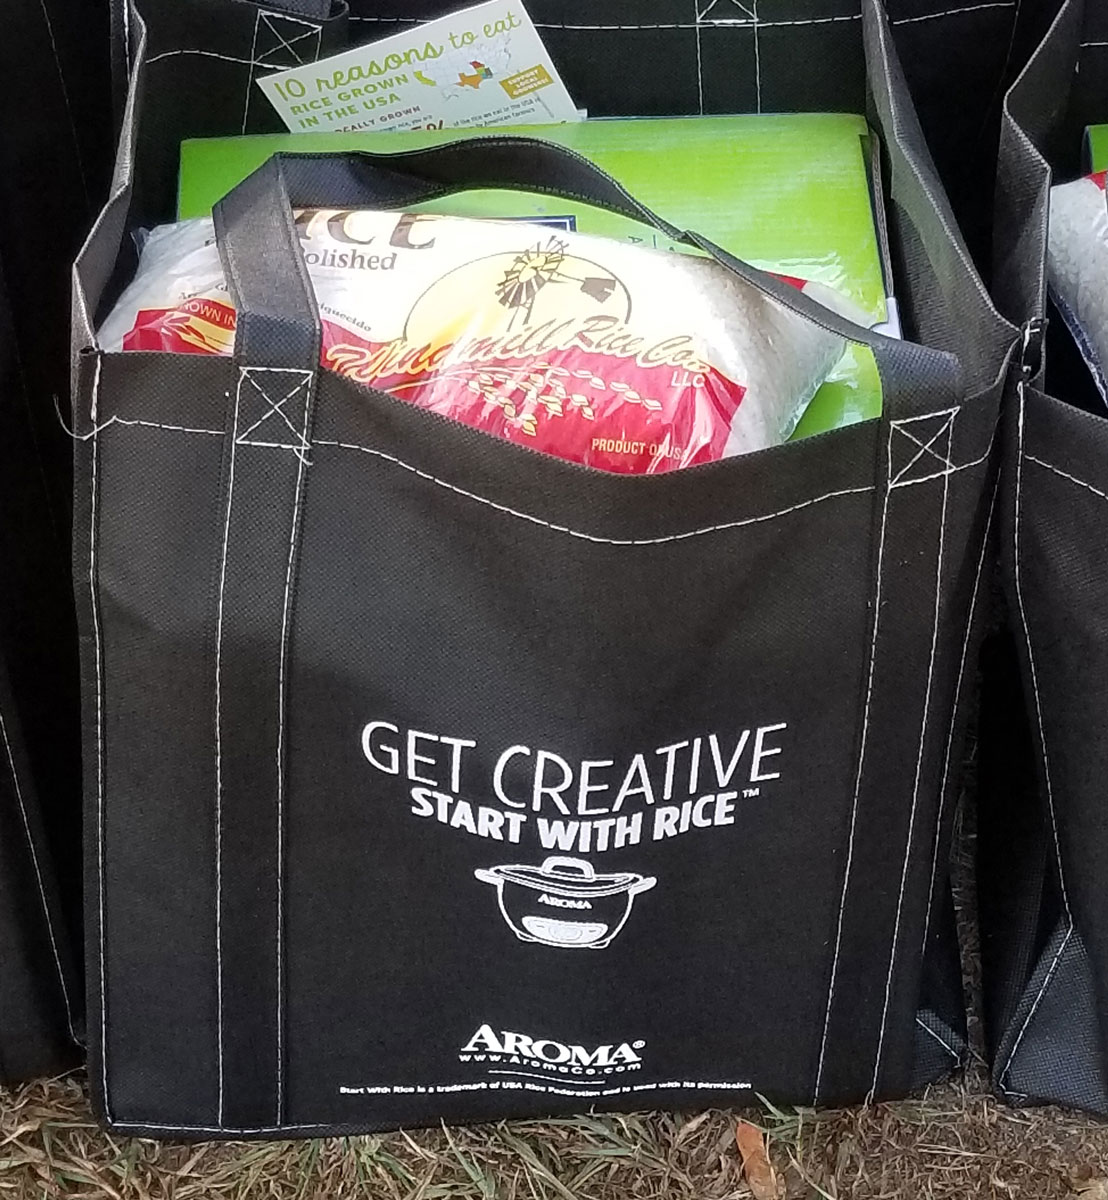 "Black shopping bag filled with green box and bag of rice, text on side says ""Get Creative, Start with Rice"""